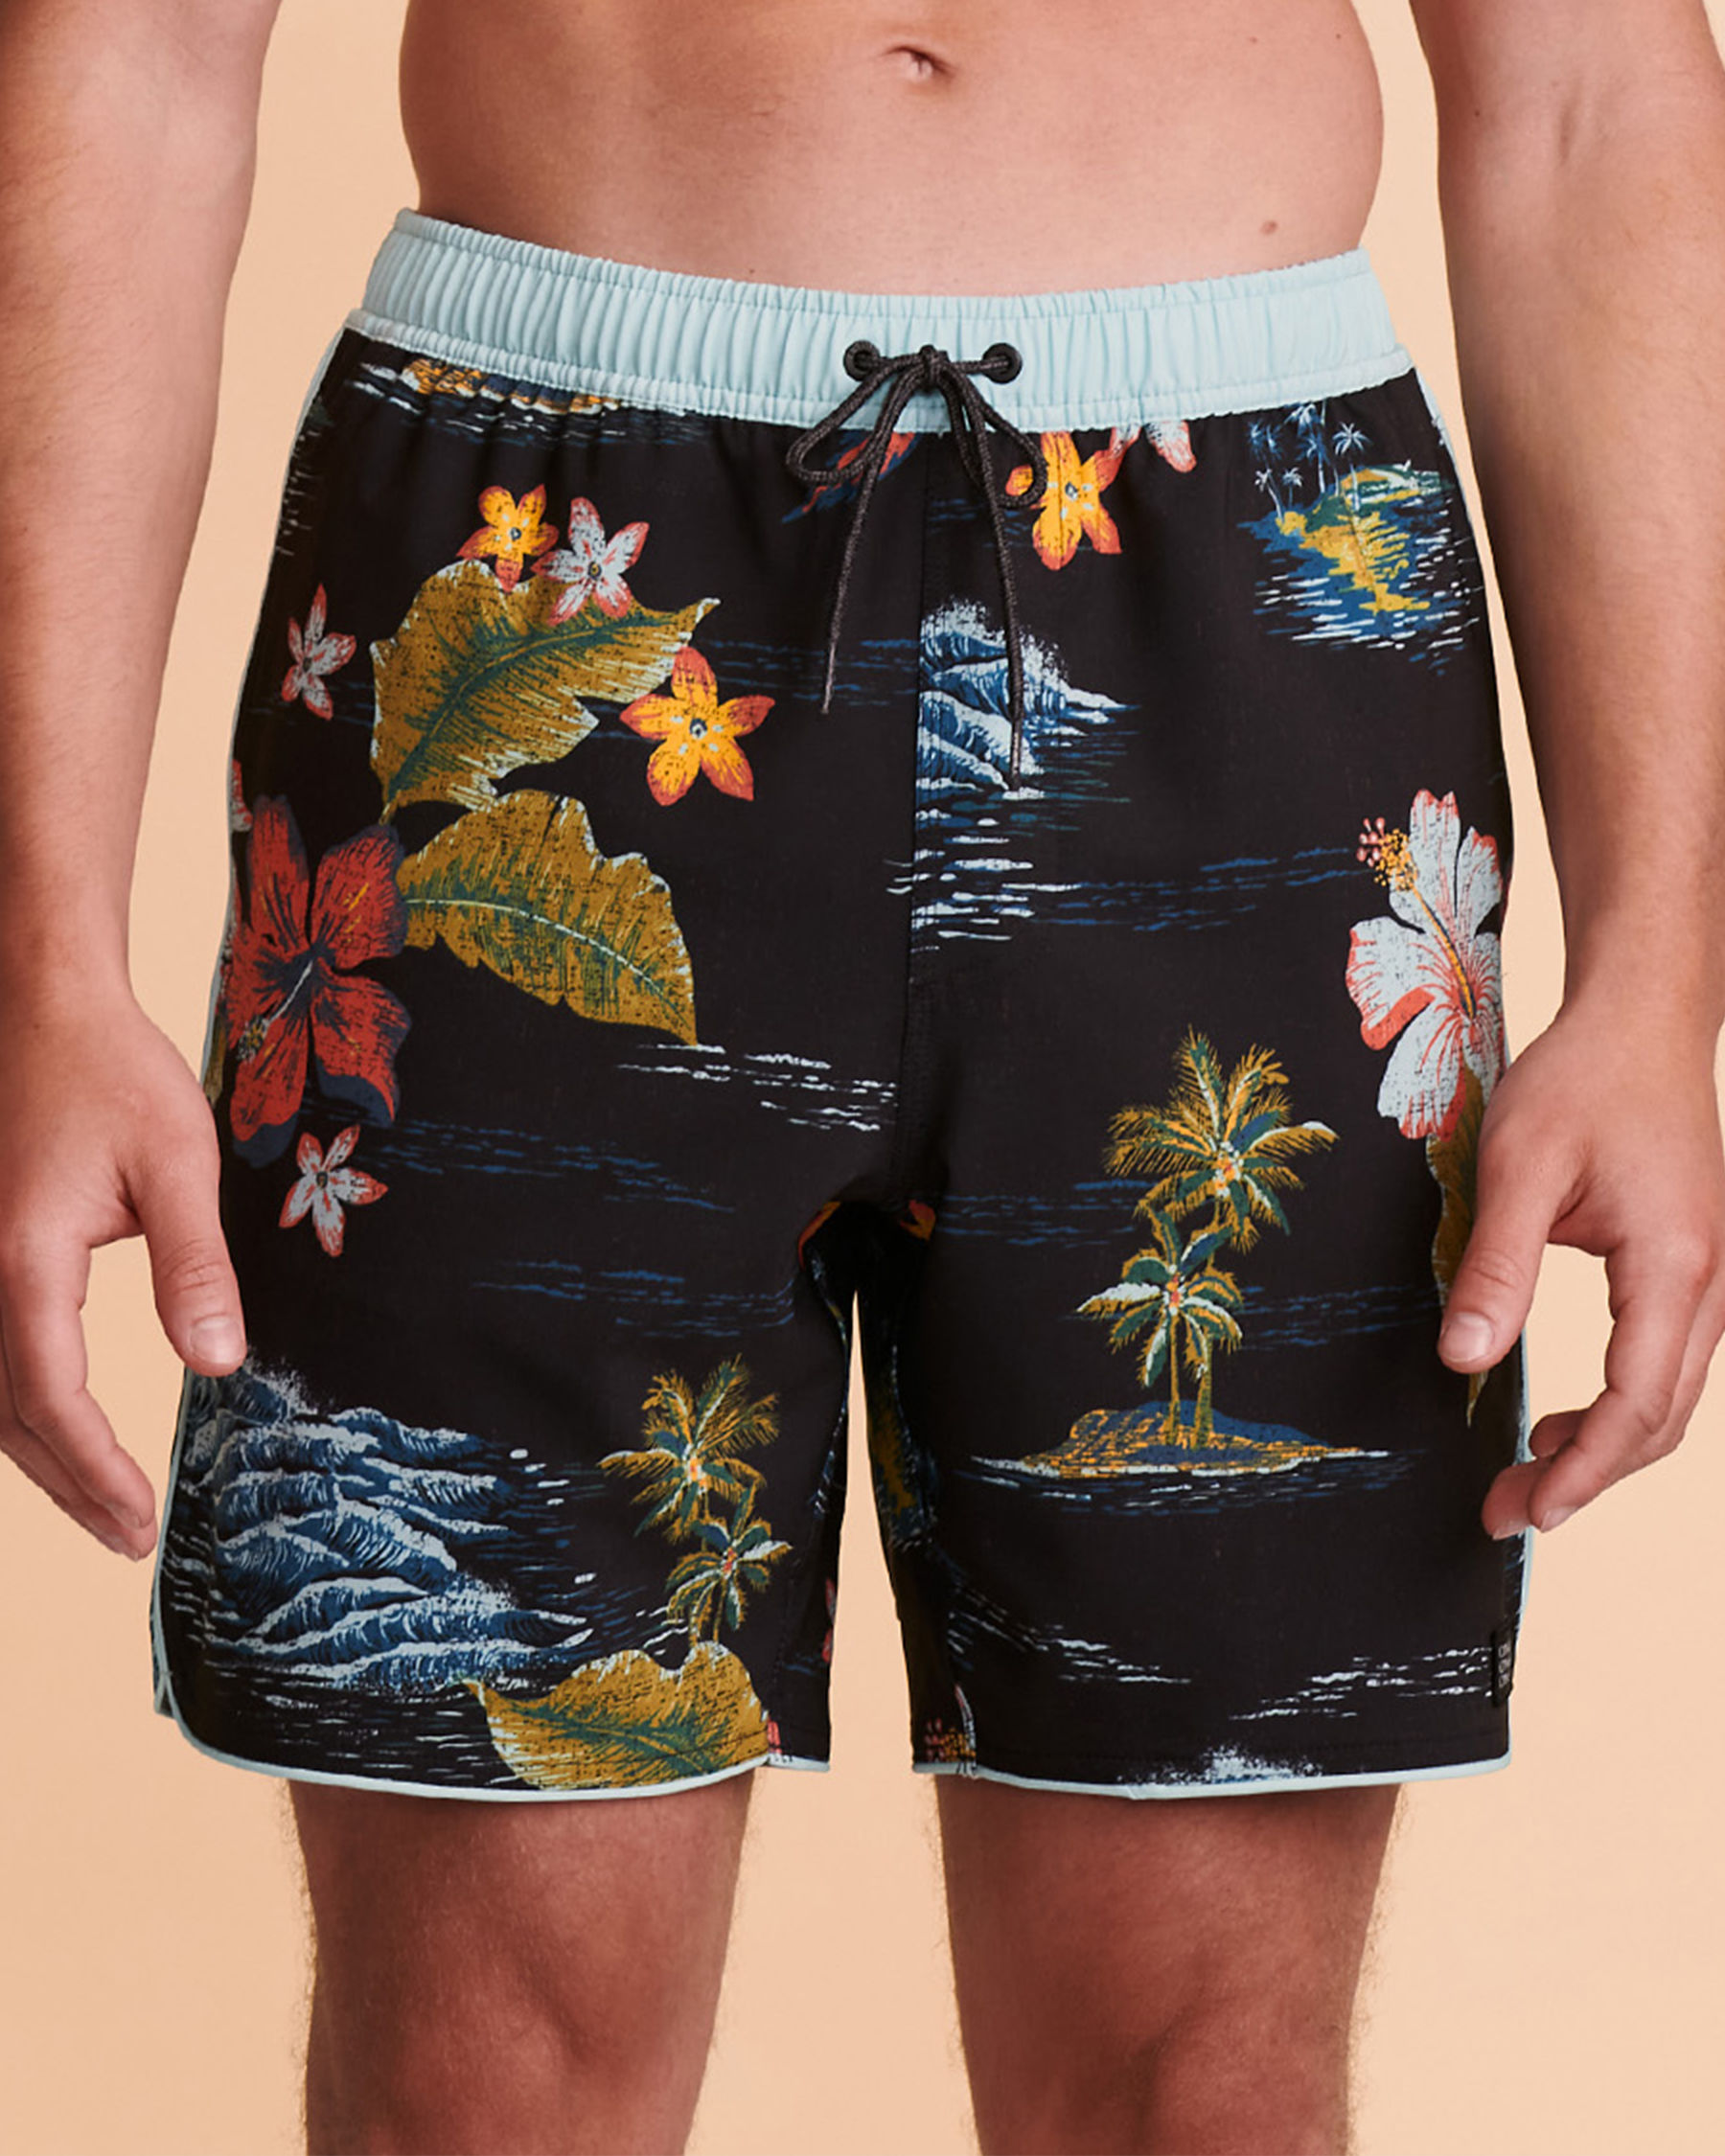 O'NEILL EXCHANGE Volley Swimsuit Tropical print SP1106018 - View1